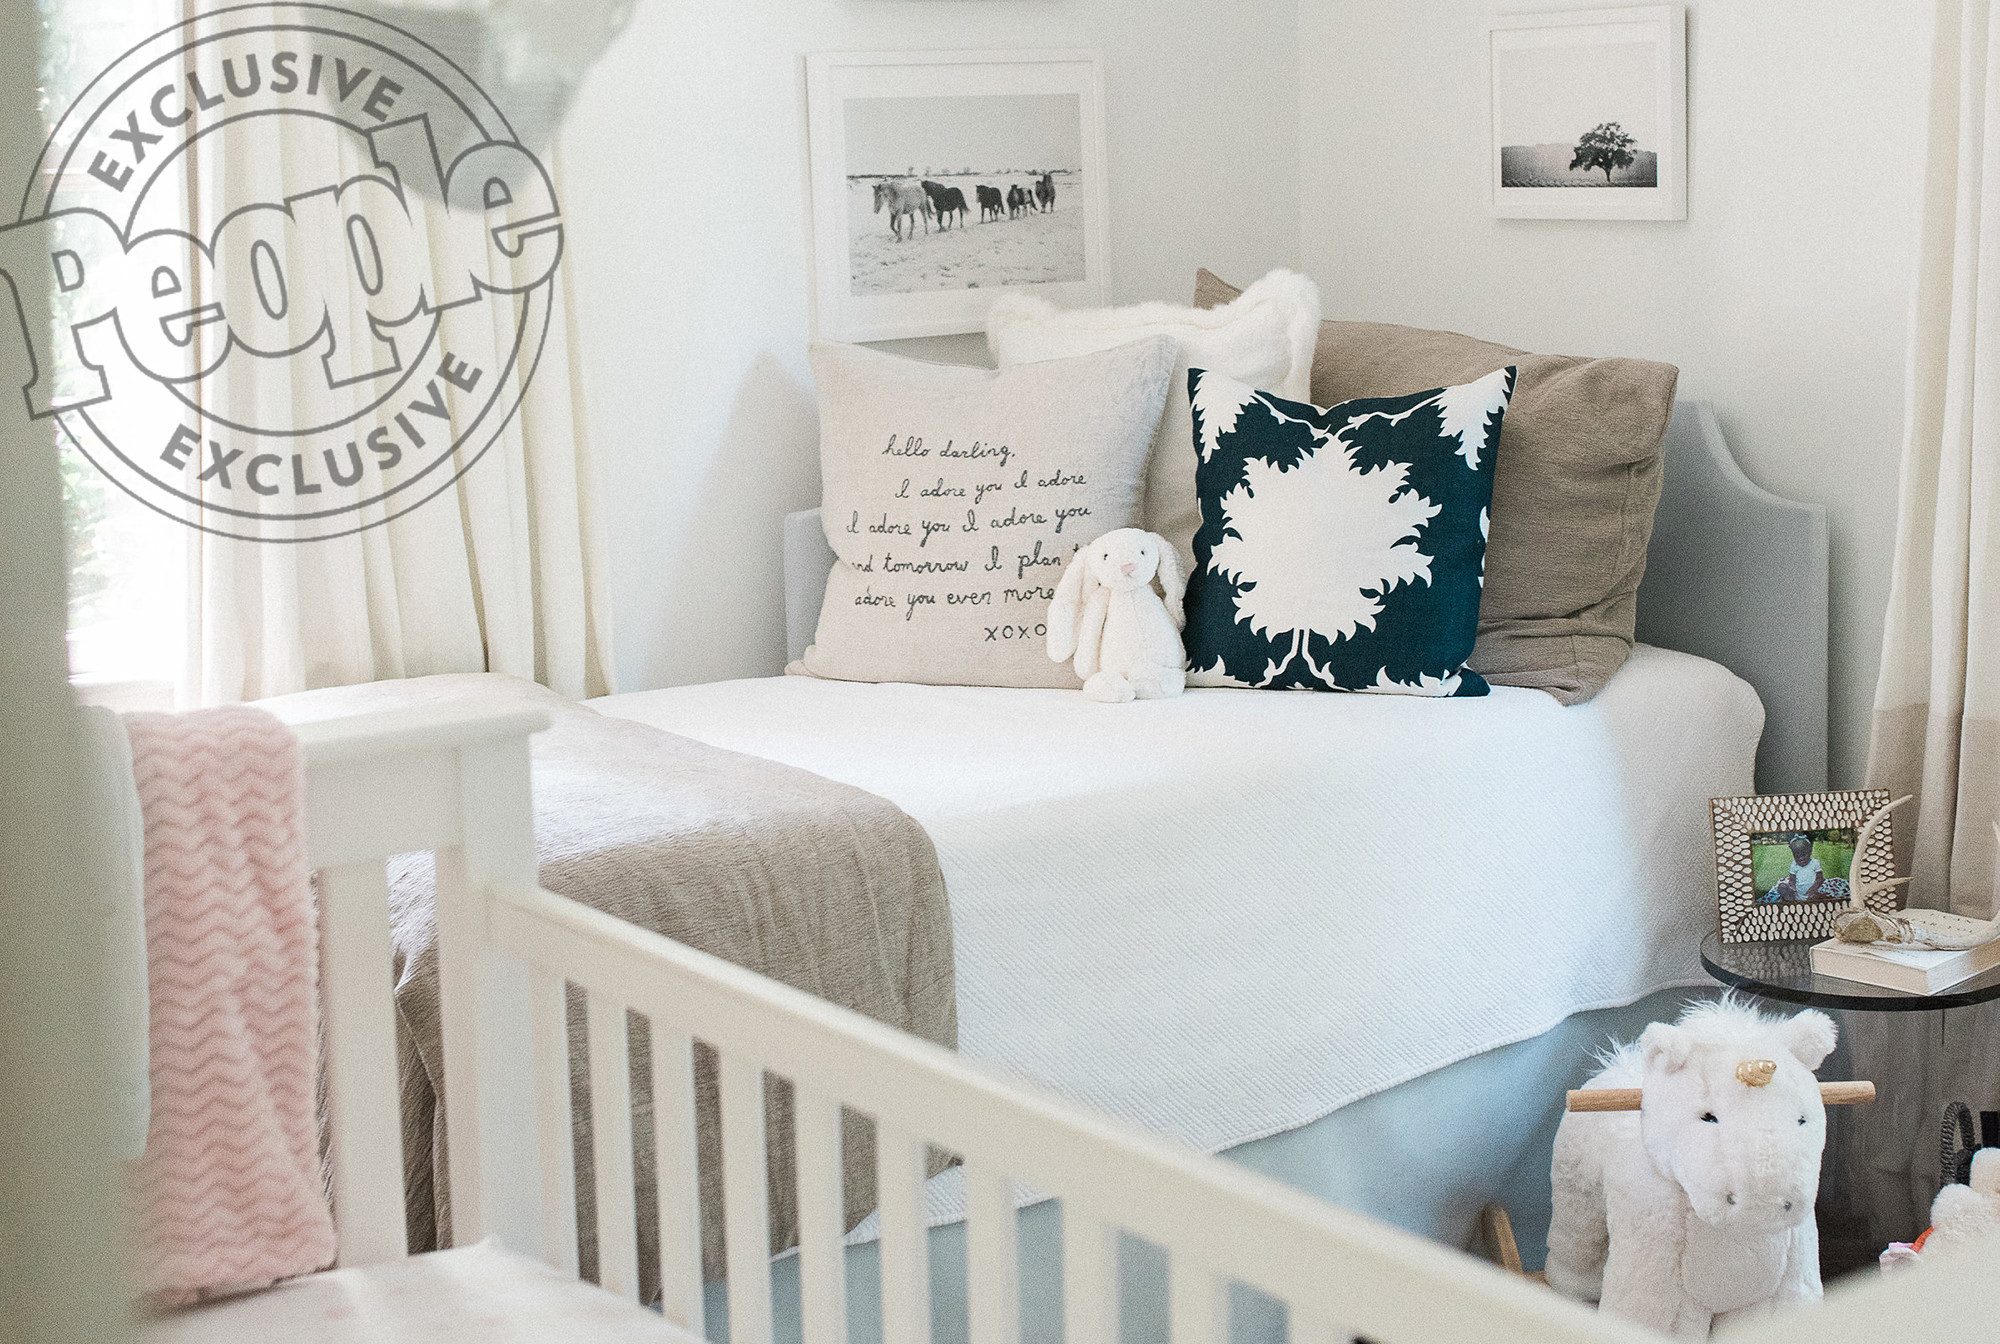 Inside Thomas Rhett and Lauren Akins' Sweet - with 'Not Too Much Pink' - Rooms for Daughters Ada and Willa